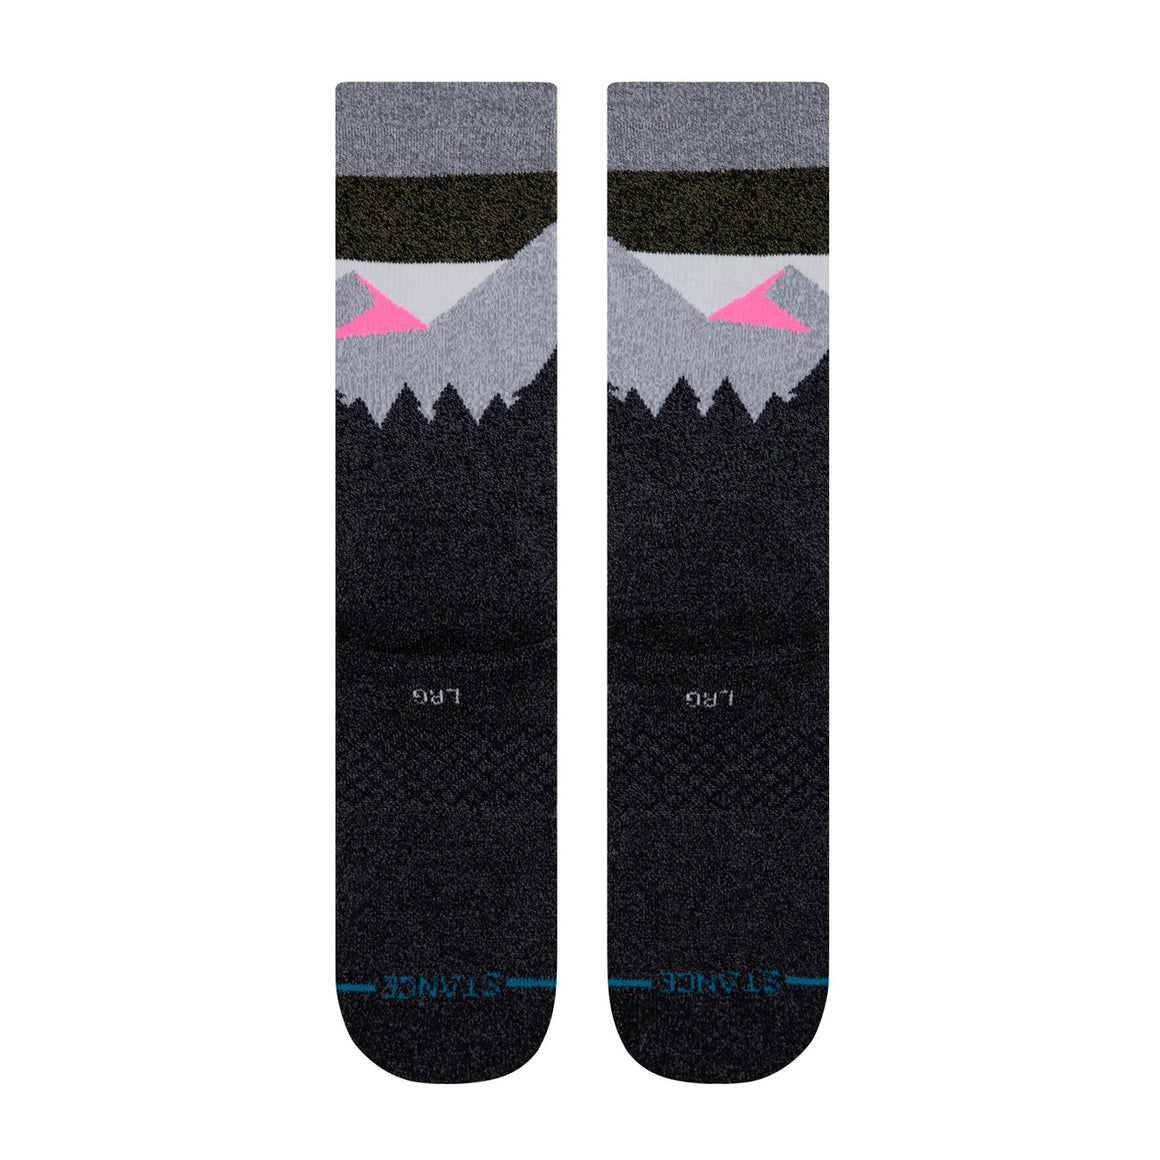 Women's Stance HIKING Divide Street Crew Socks